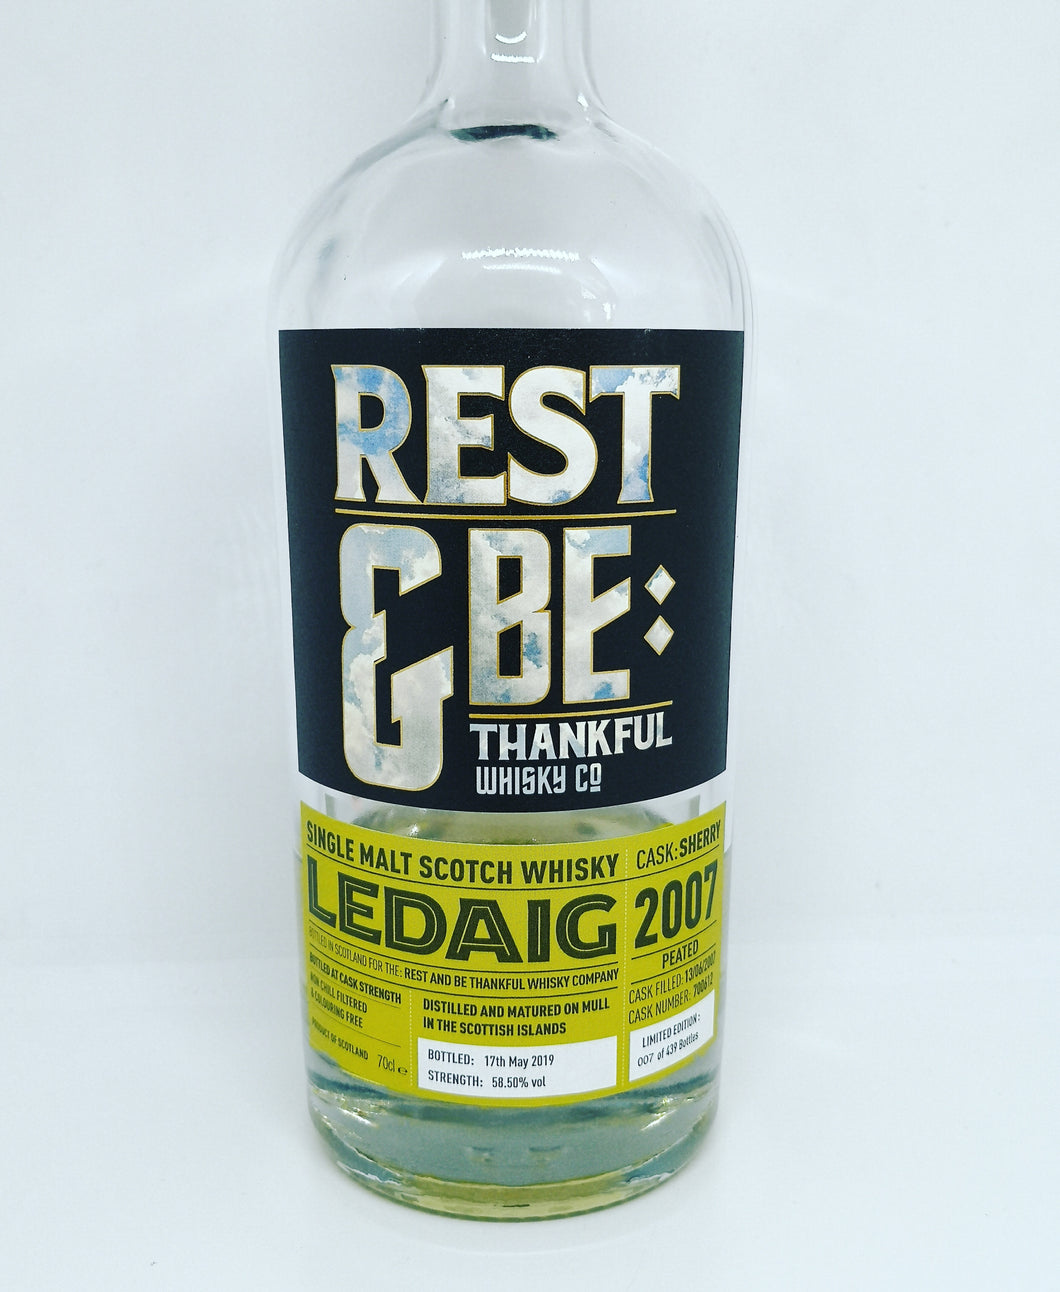 Rest and Be Thankful Ledaig 2007/2019 12yo Sherry Cask, 58.5%